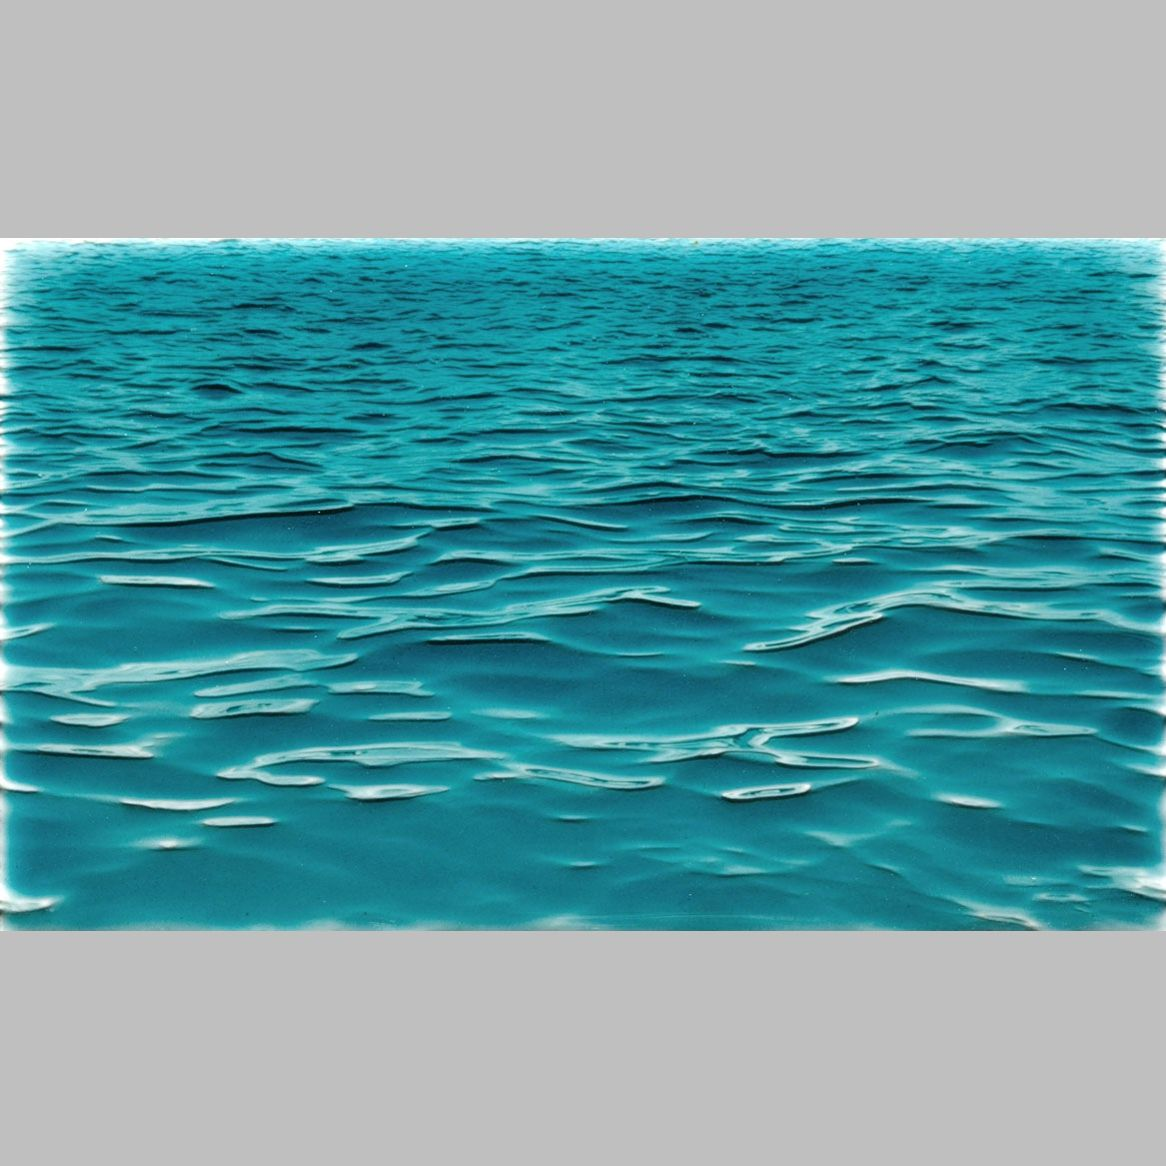 Caribbean Water Border Tile Border tiles, Water